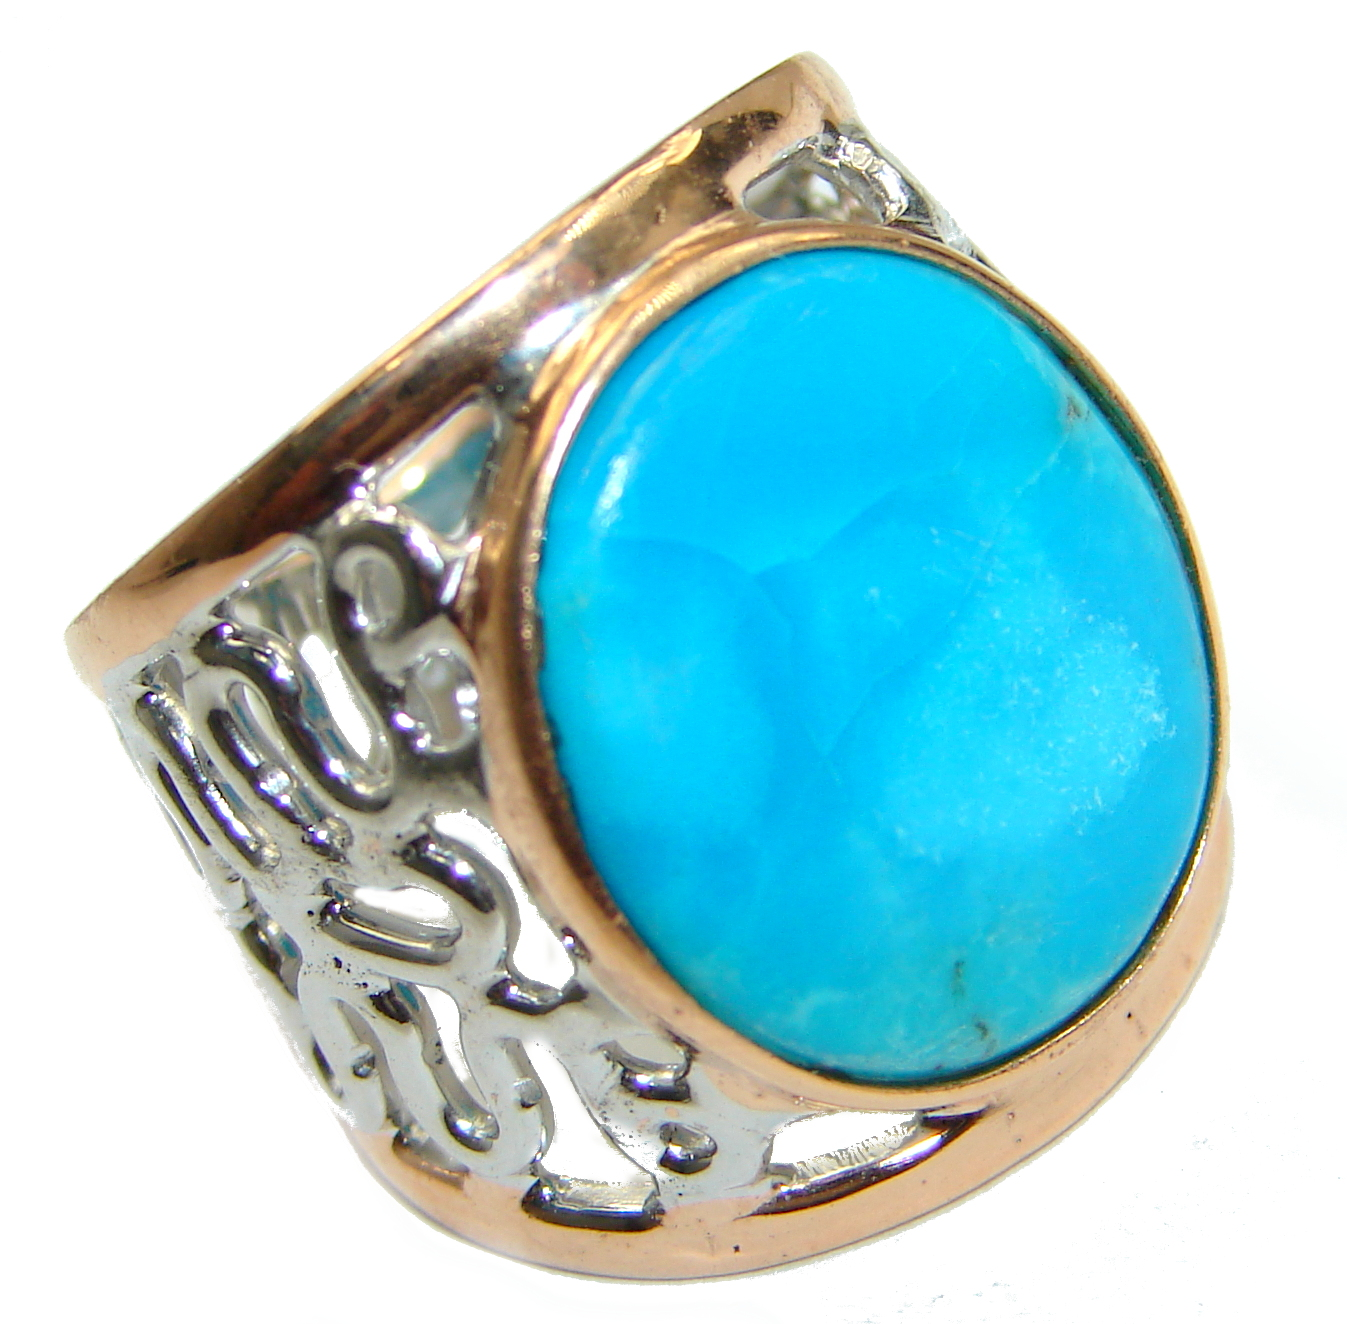 Genuine Sleeping Beauty Turquoise Gold over .925 Sterling Silver Ring size 7 1/4